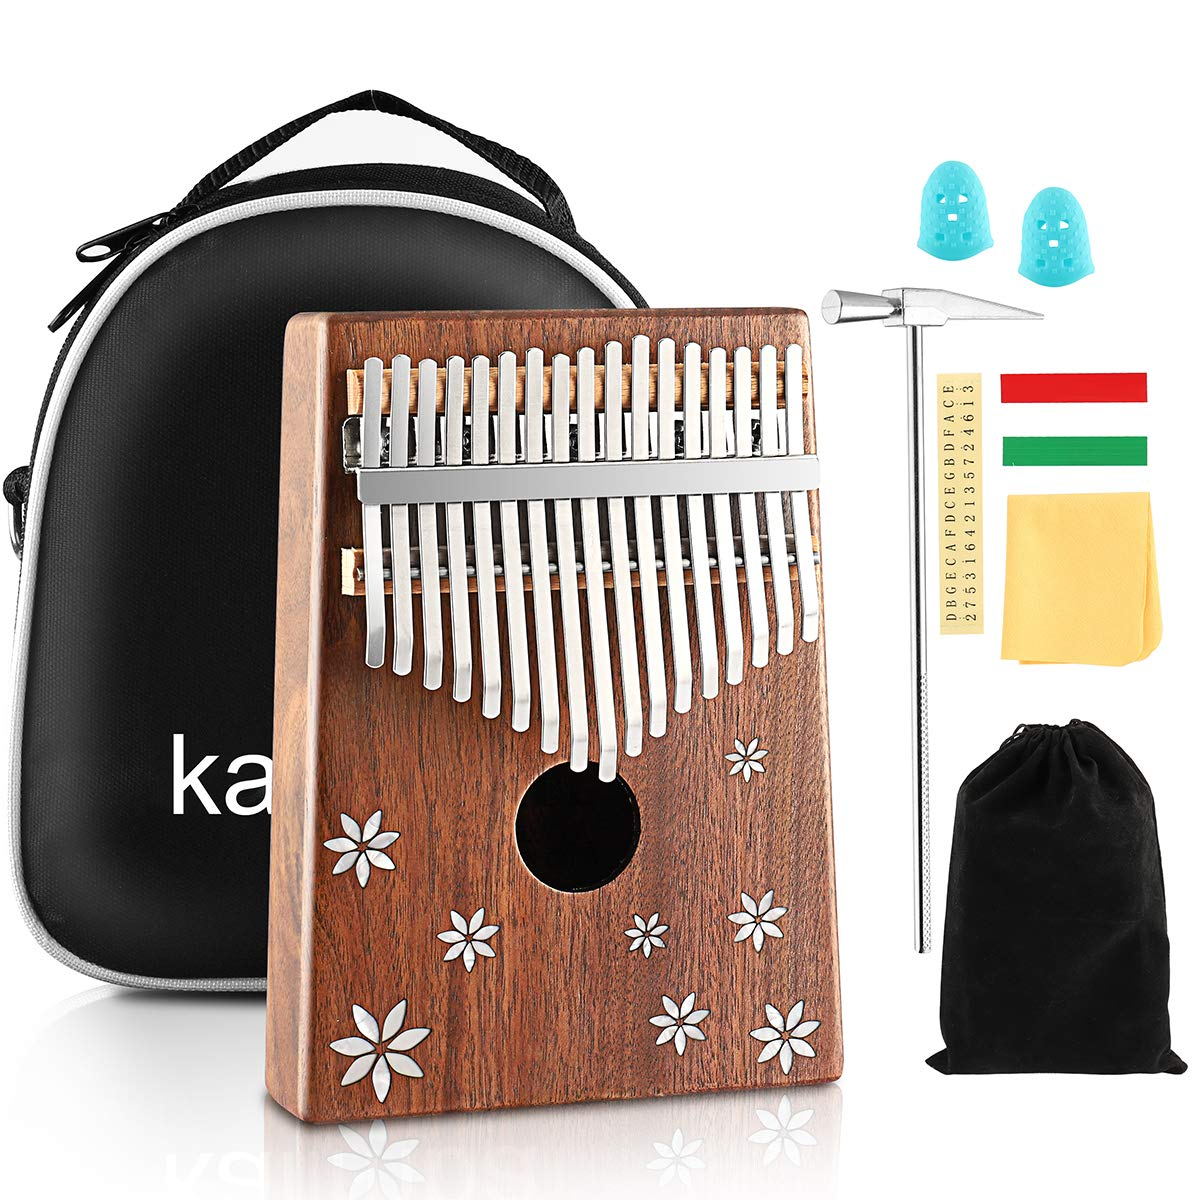 Kalimba 17 Key Thumb Piano Finger Piano Mahogany Wood Body Mbira 17 Tone Musical Instrument for Kids Gift Beginner Musician with Music Book Tune Hammer and Bag by MIFXIN (Image #1)